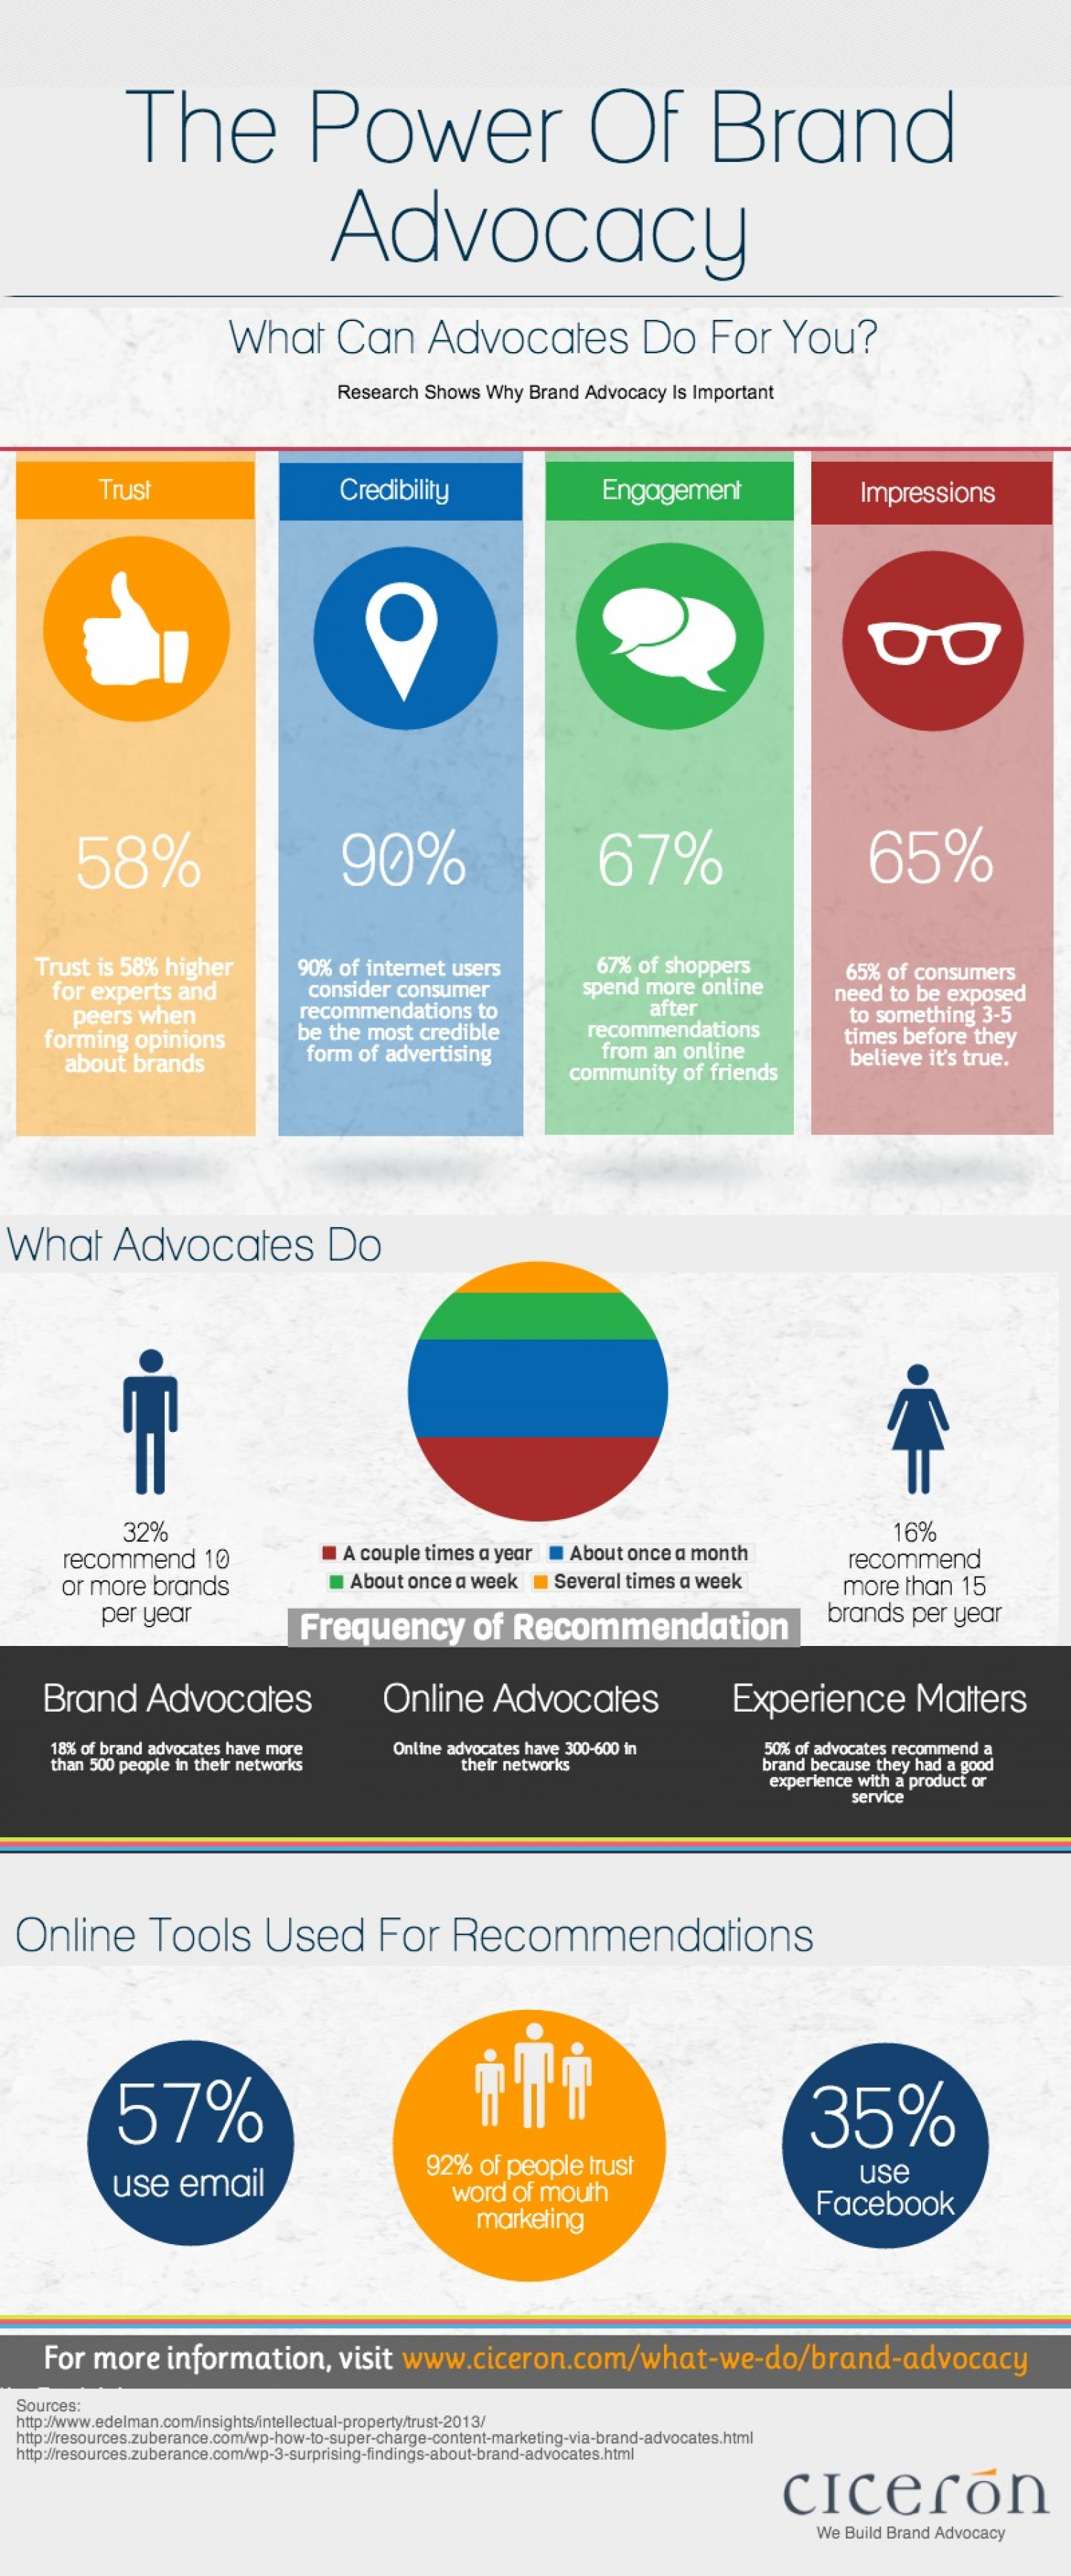 The Power of Brand Advocacy Infographic